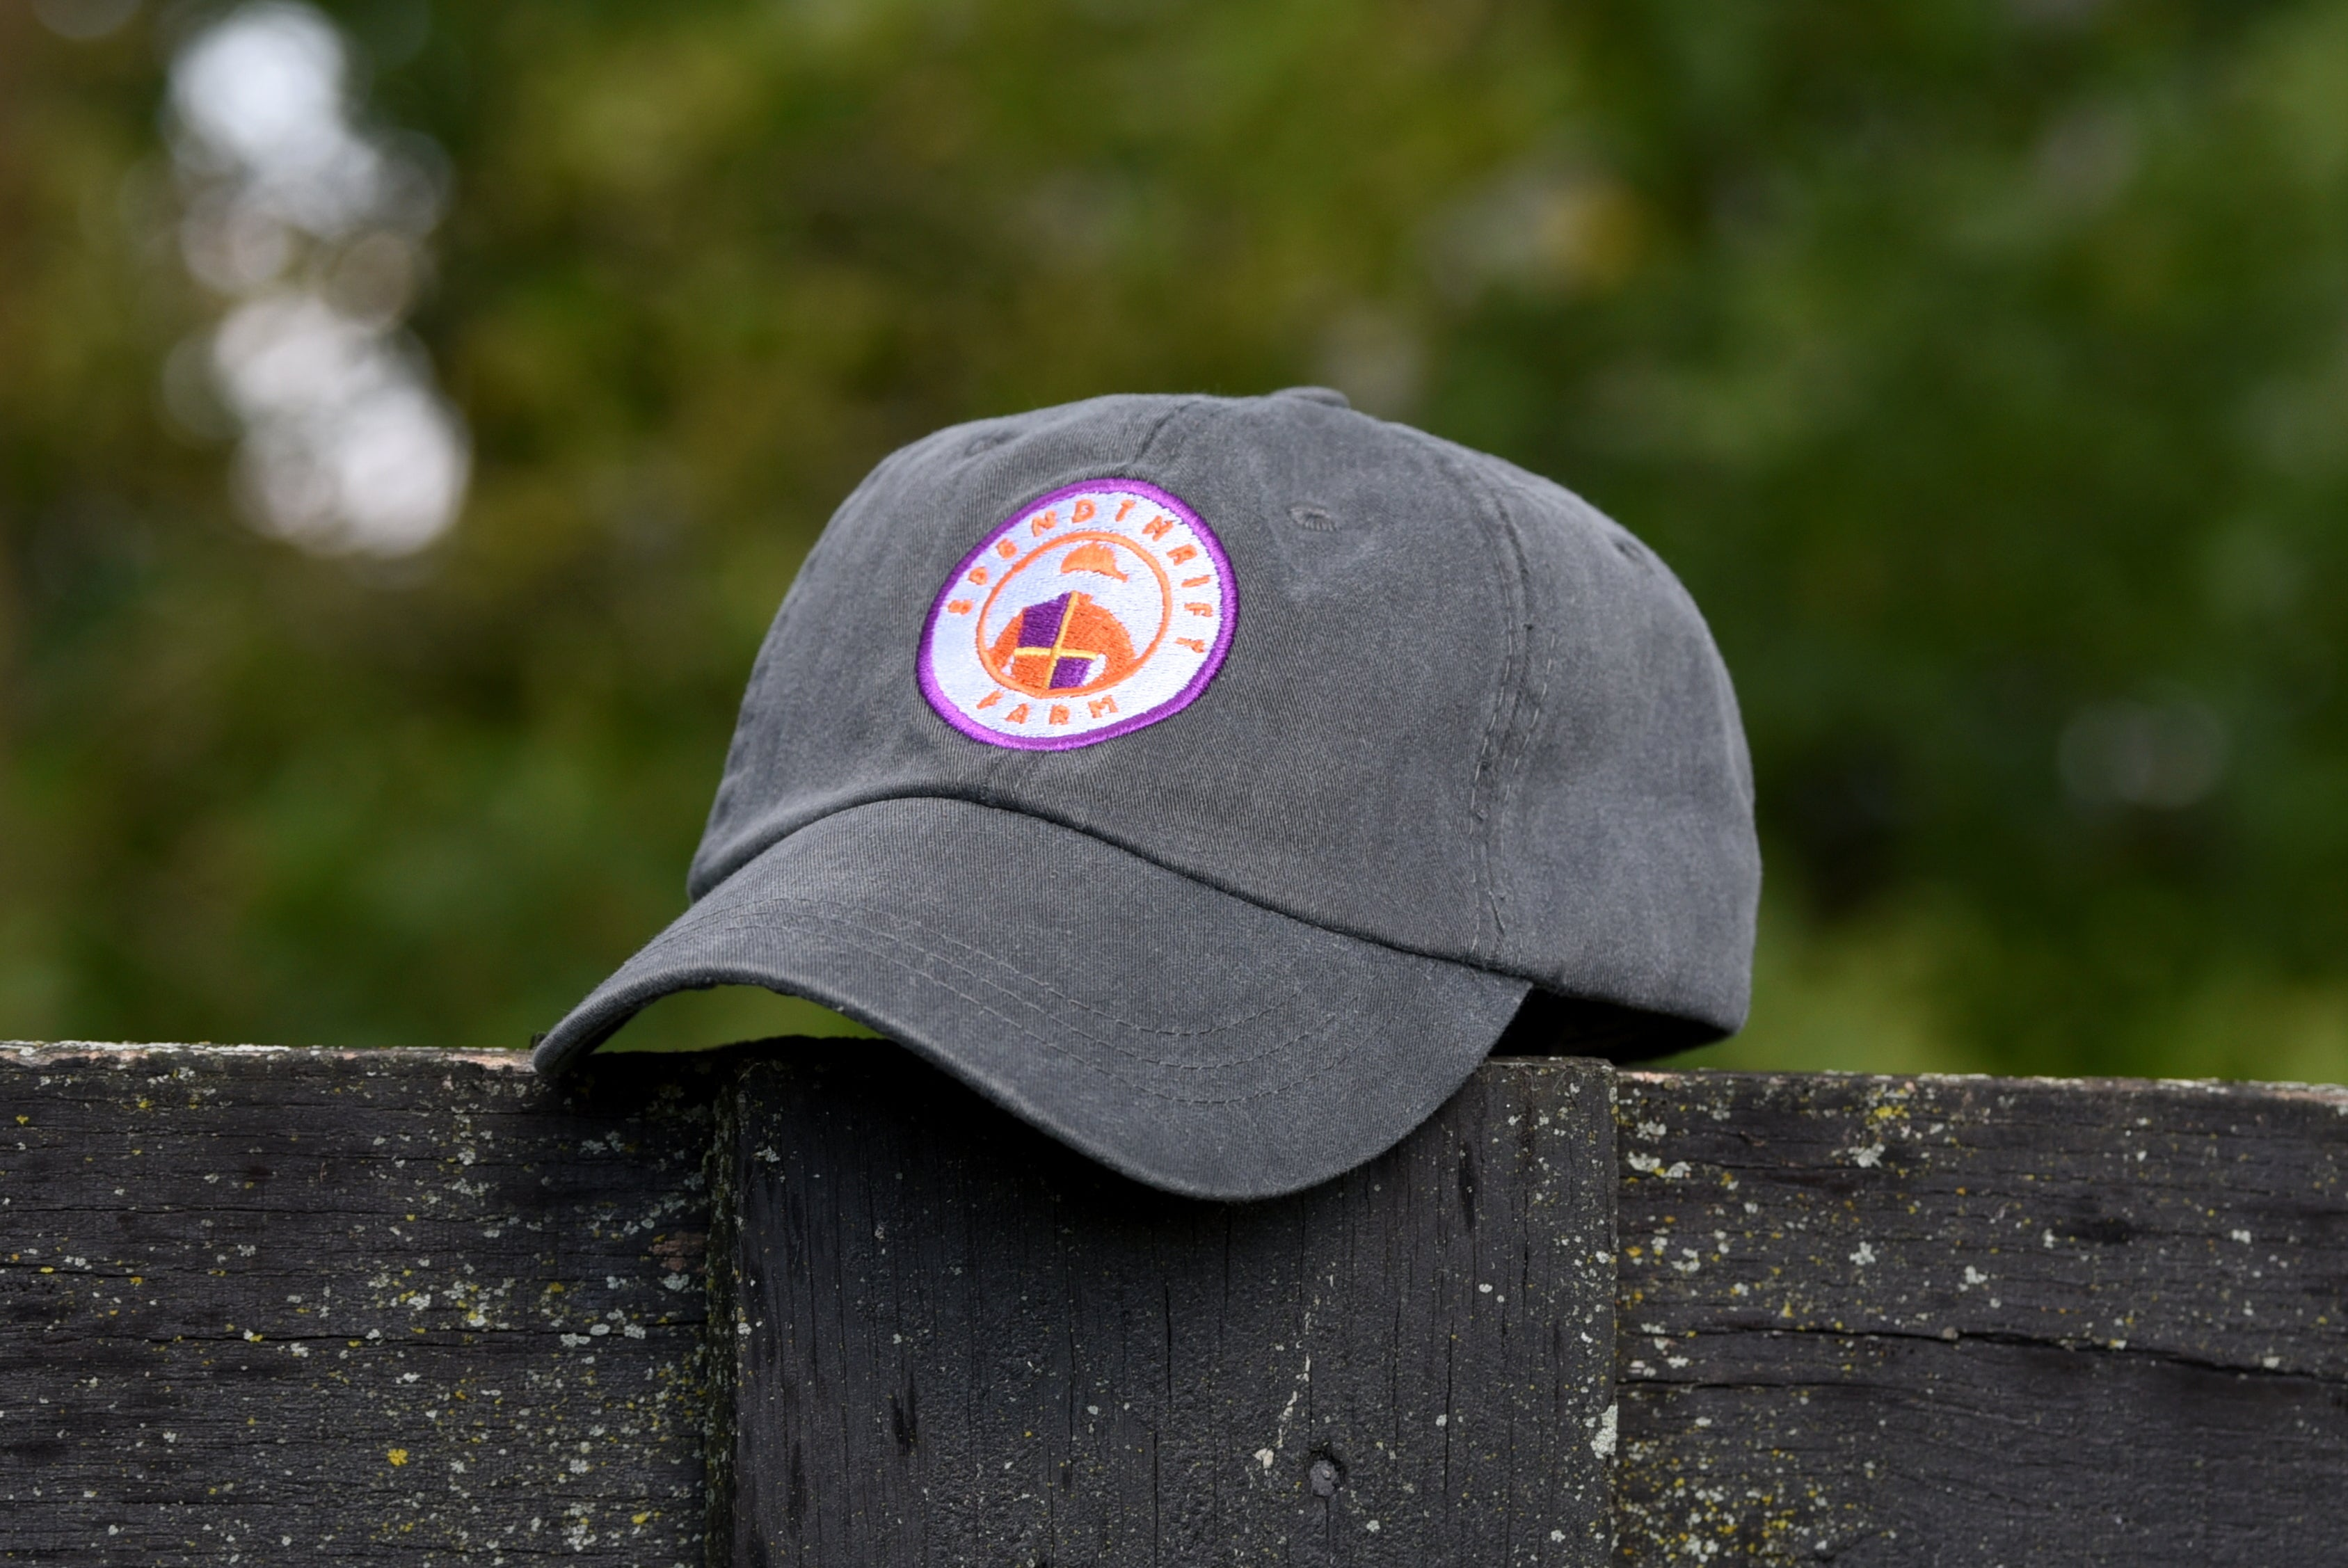 The Heritage Hat